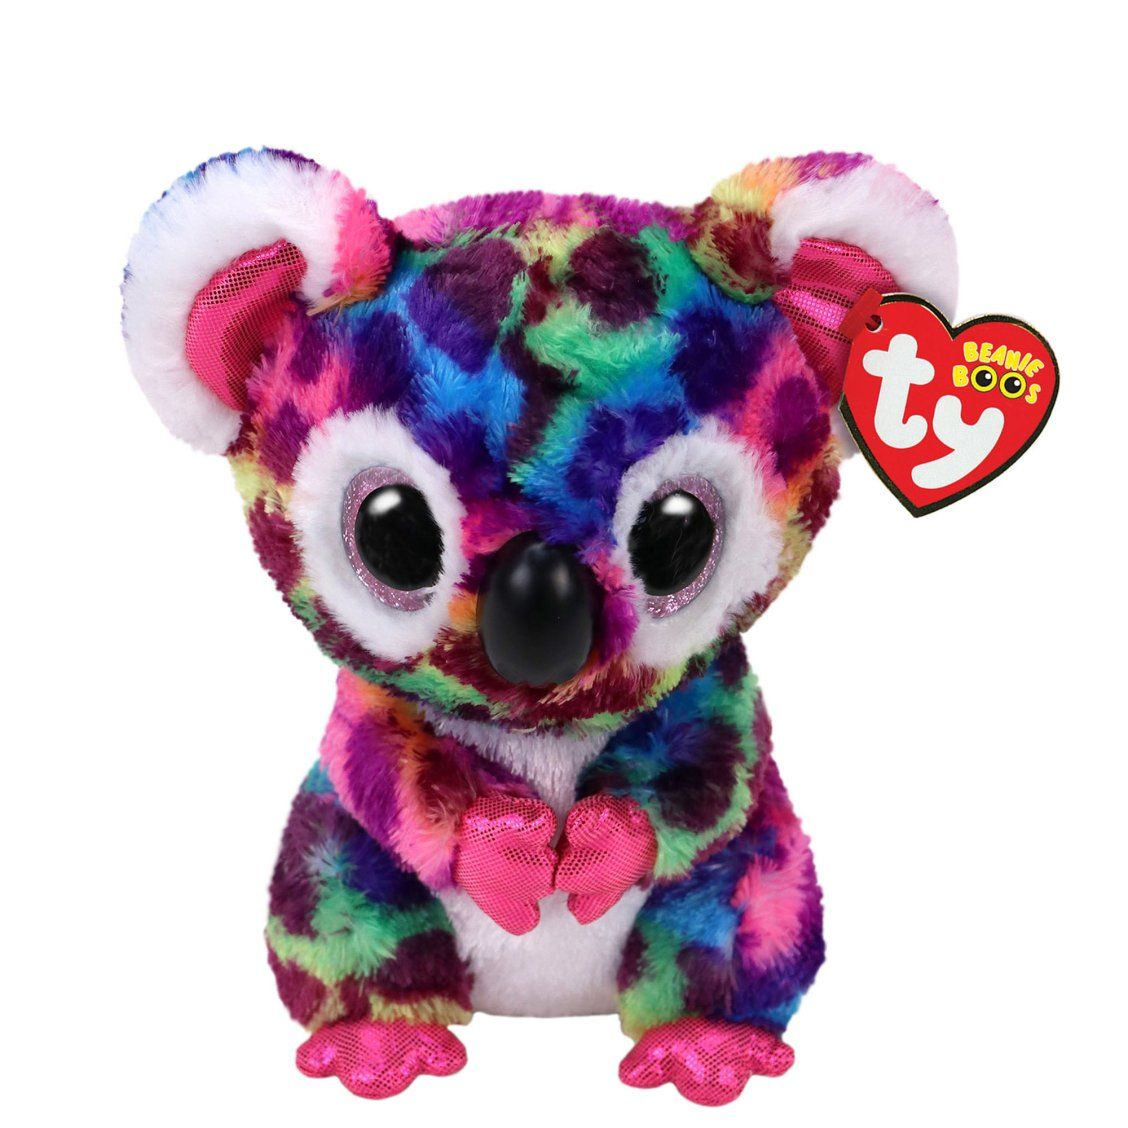 023eb532163 TY Beanie Boo Small Scout the Koala Bear Plush Toy